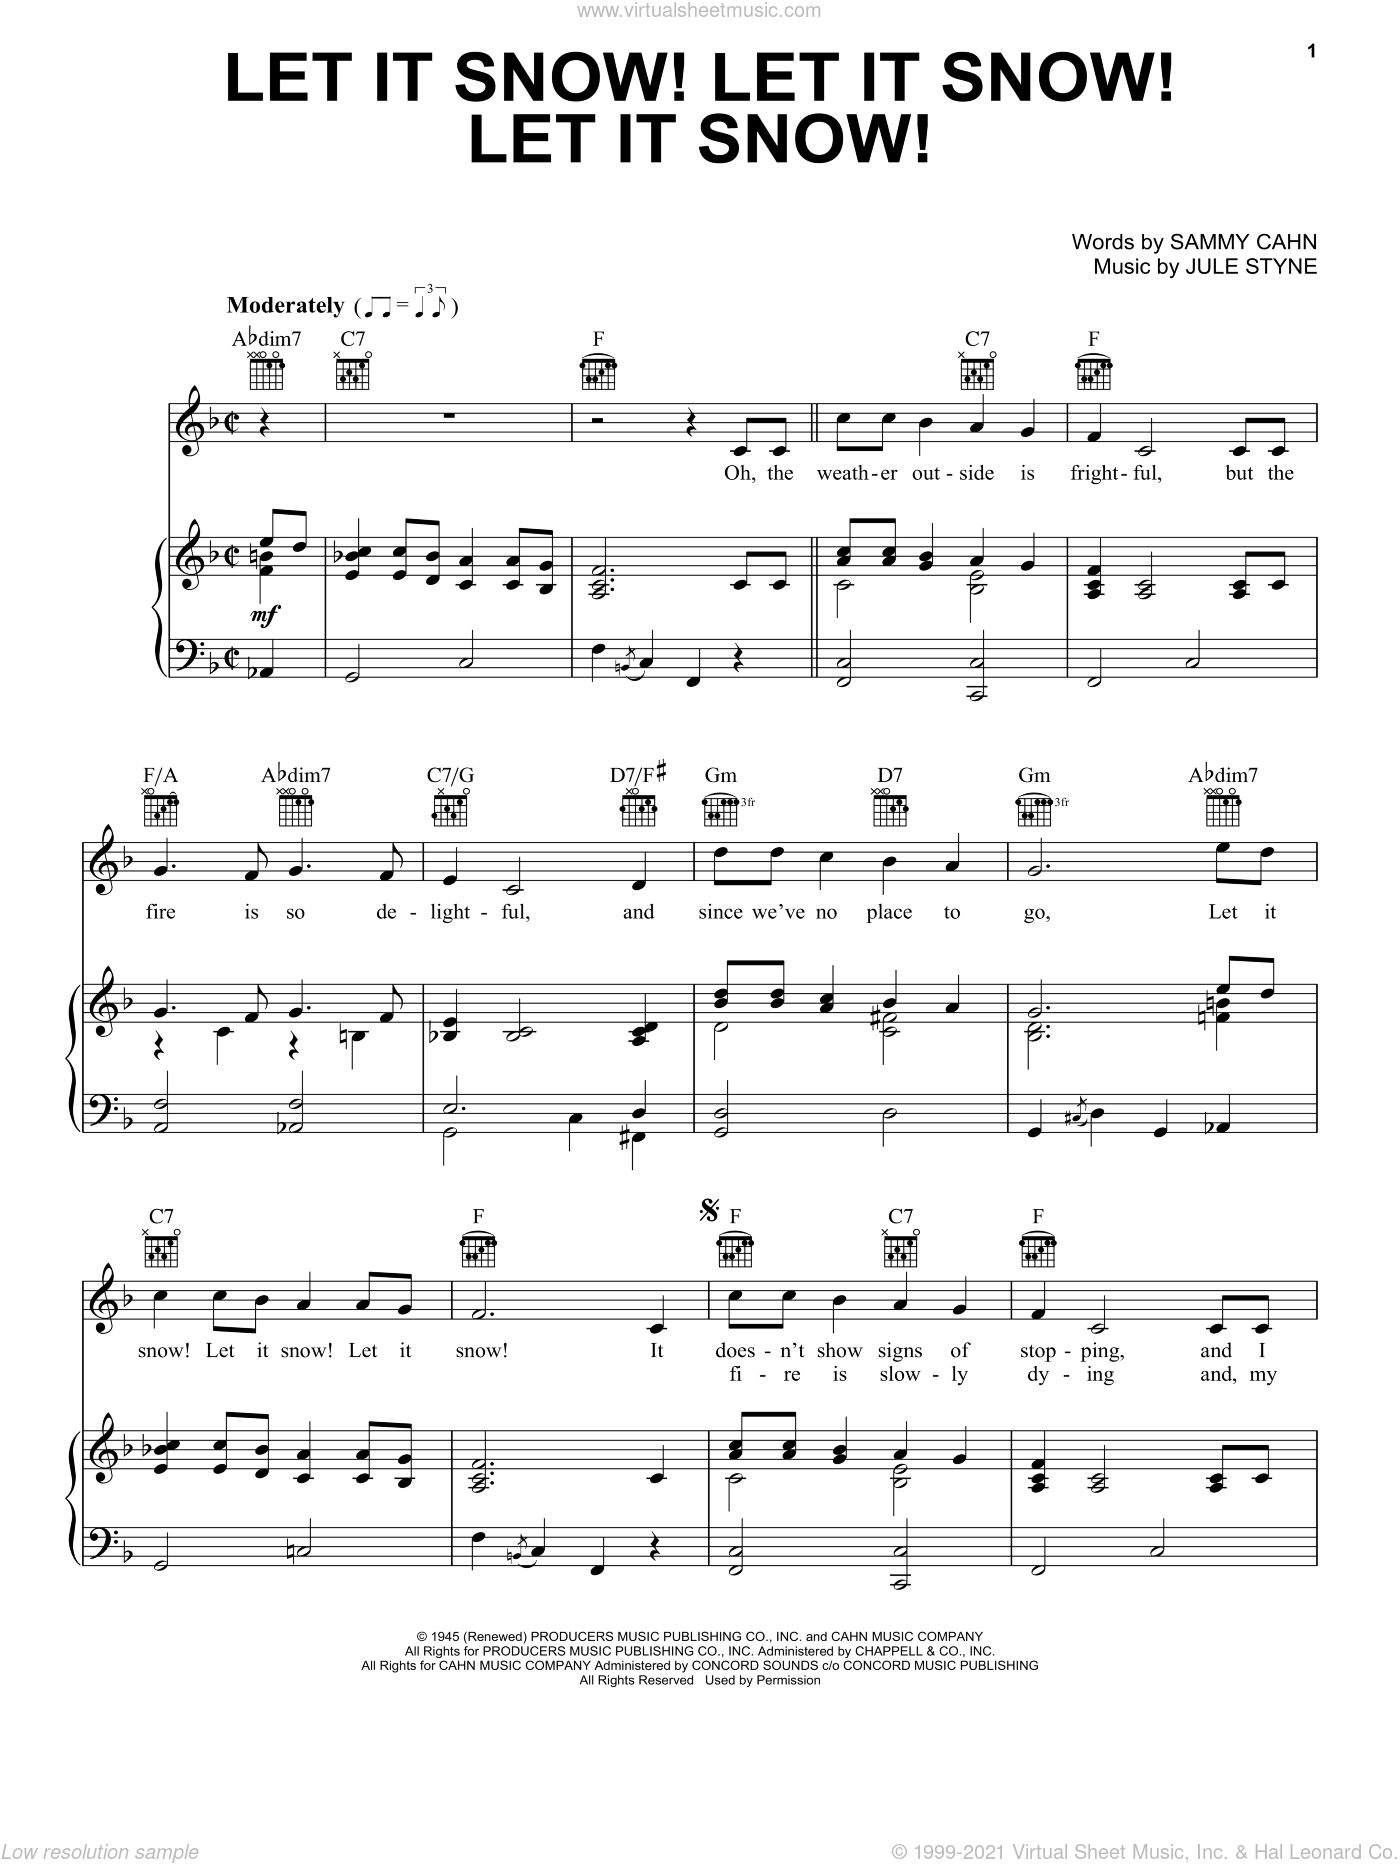 Let It Snow! Let It Snow! Let It Snow! sheet music for voice, piano or guitar by Jule Styne